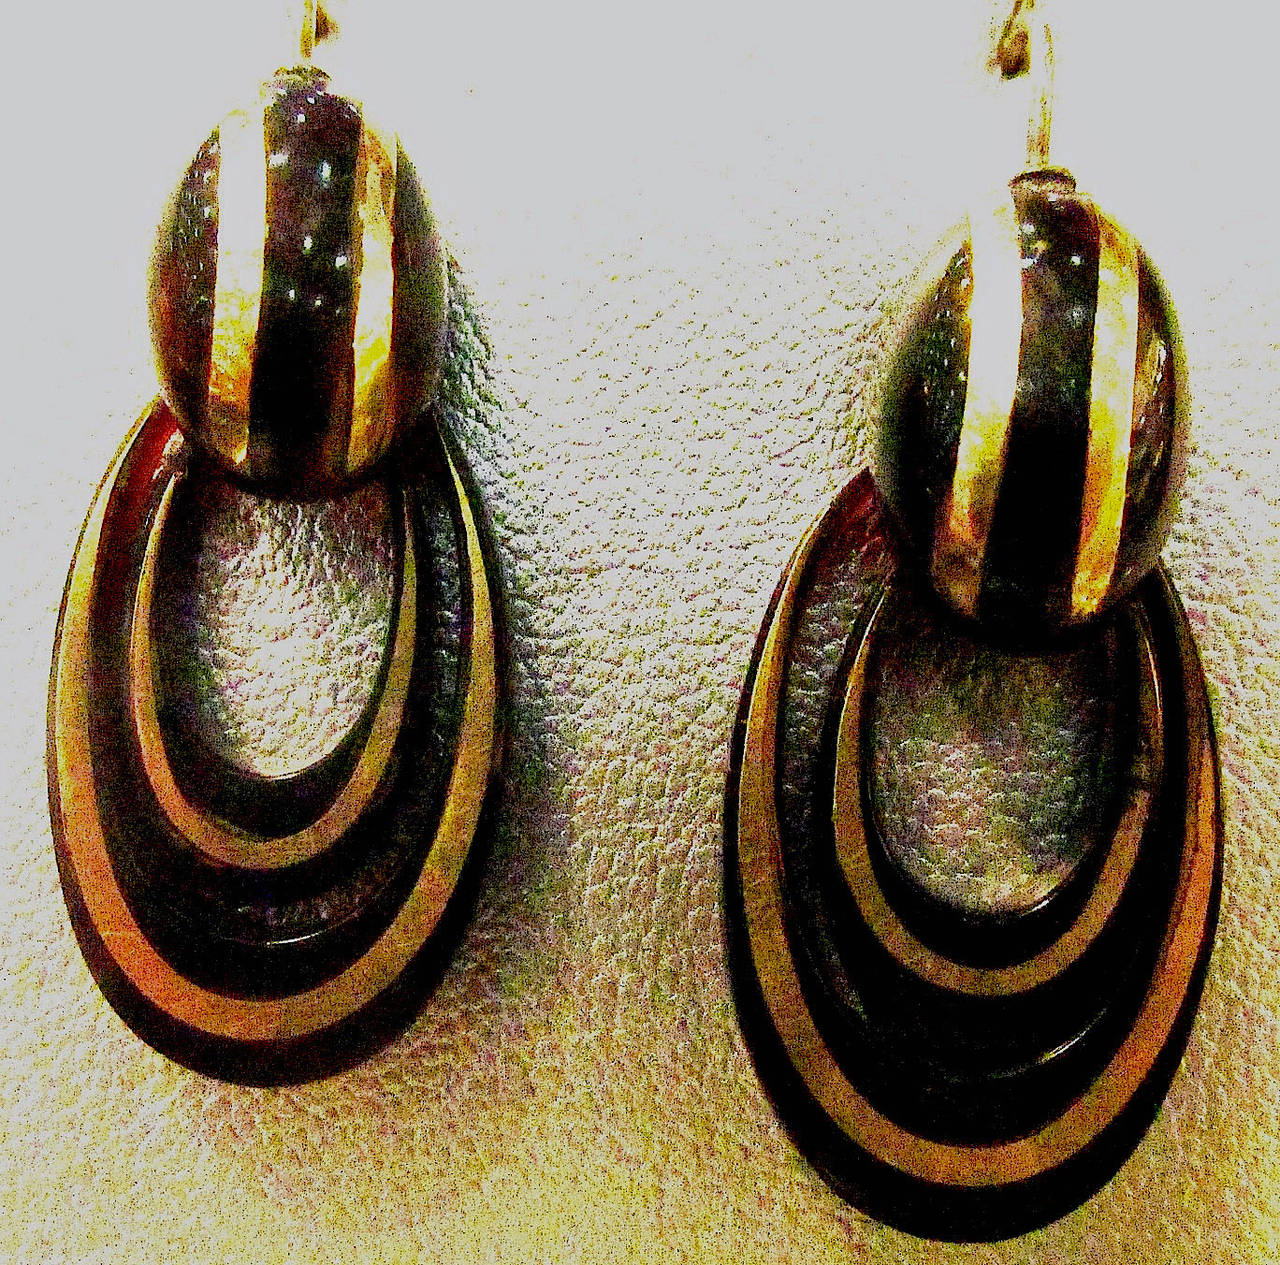 Bold Victorian pique hoop earrings of tortoiseshell inlaid with gold. The technique for making pique was brought to England by the Huguenots when they were expelled from France in the late 17th Century. Pique jewelry blossomed in the late 1800's.